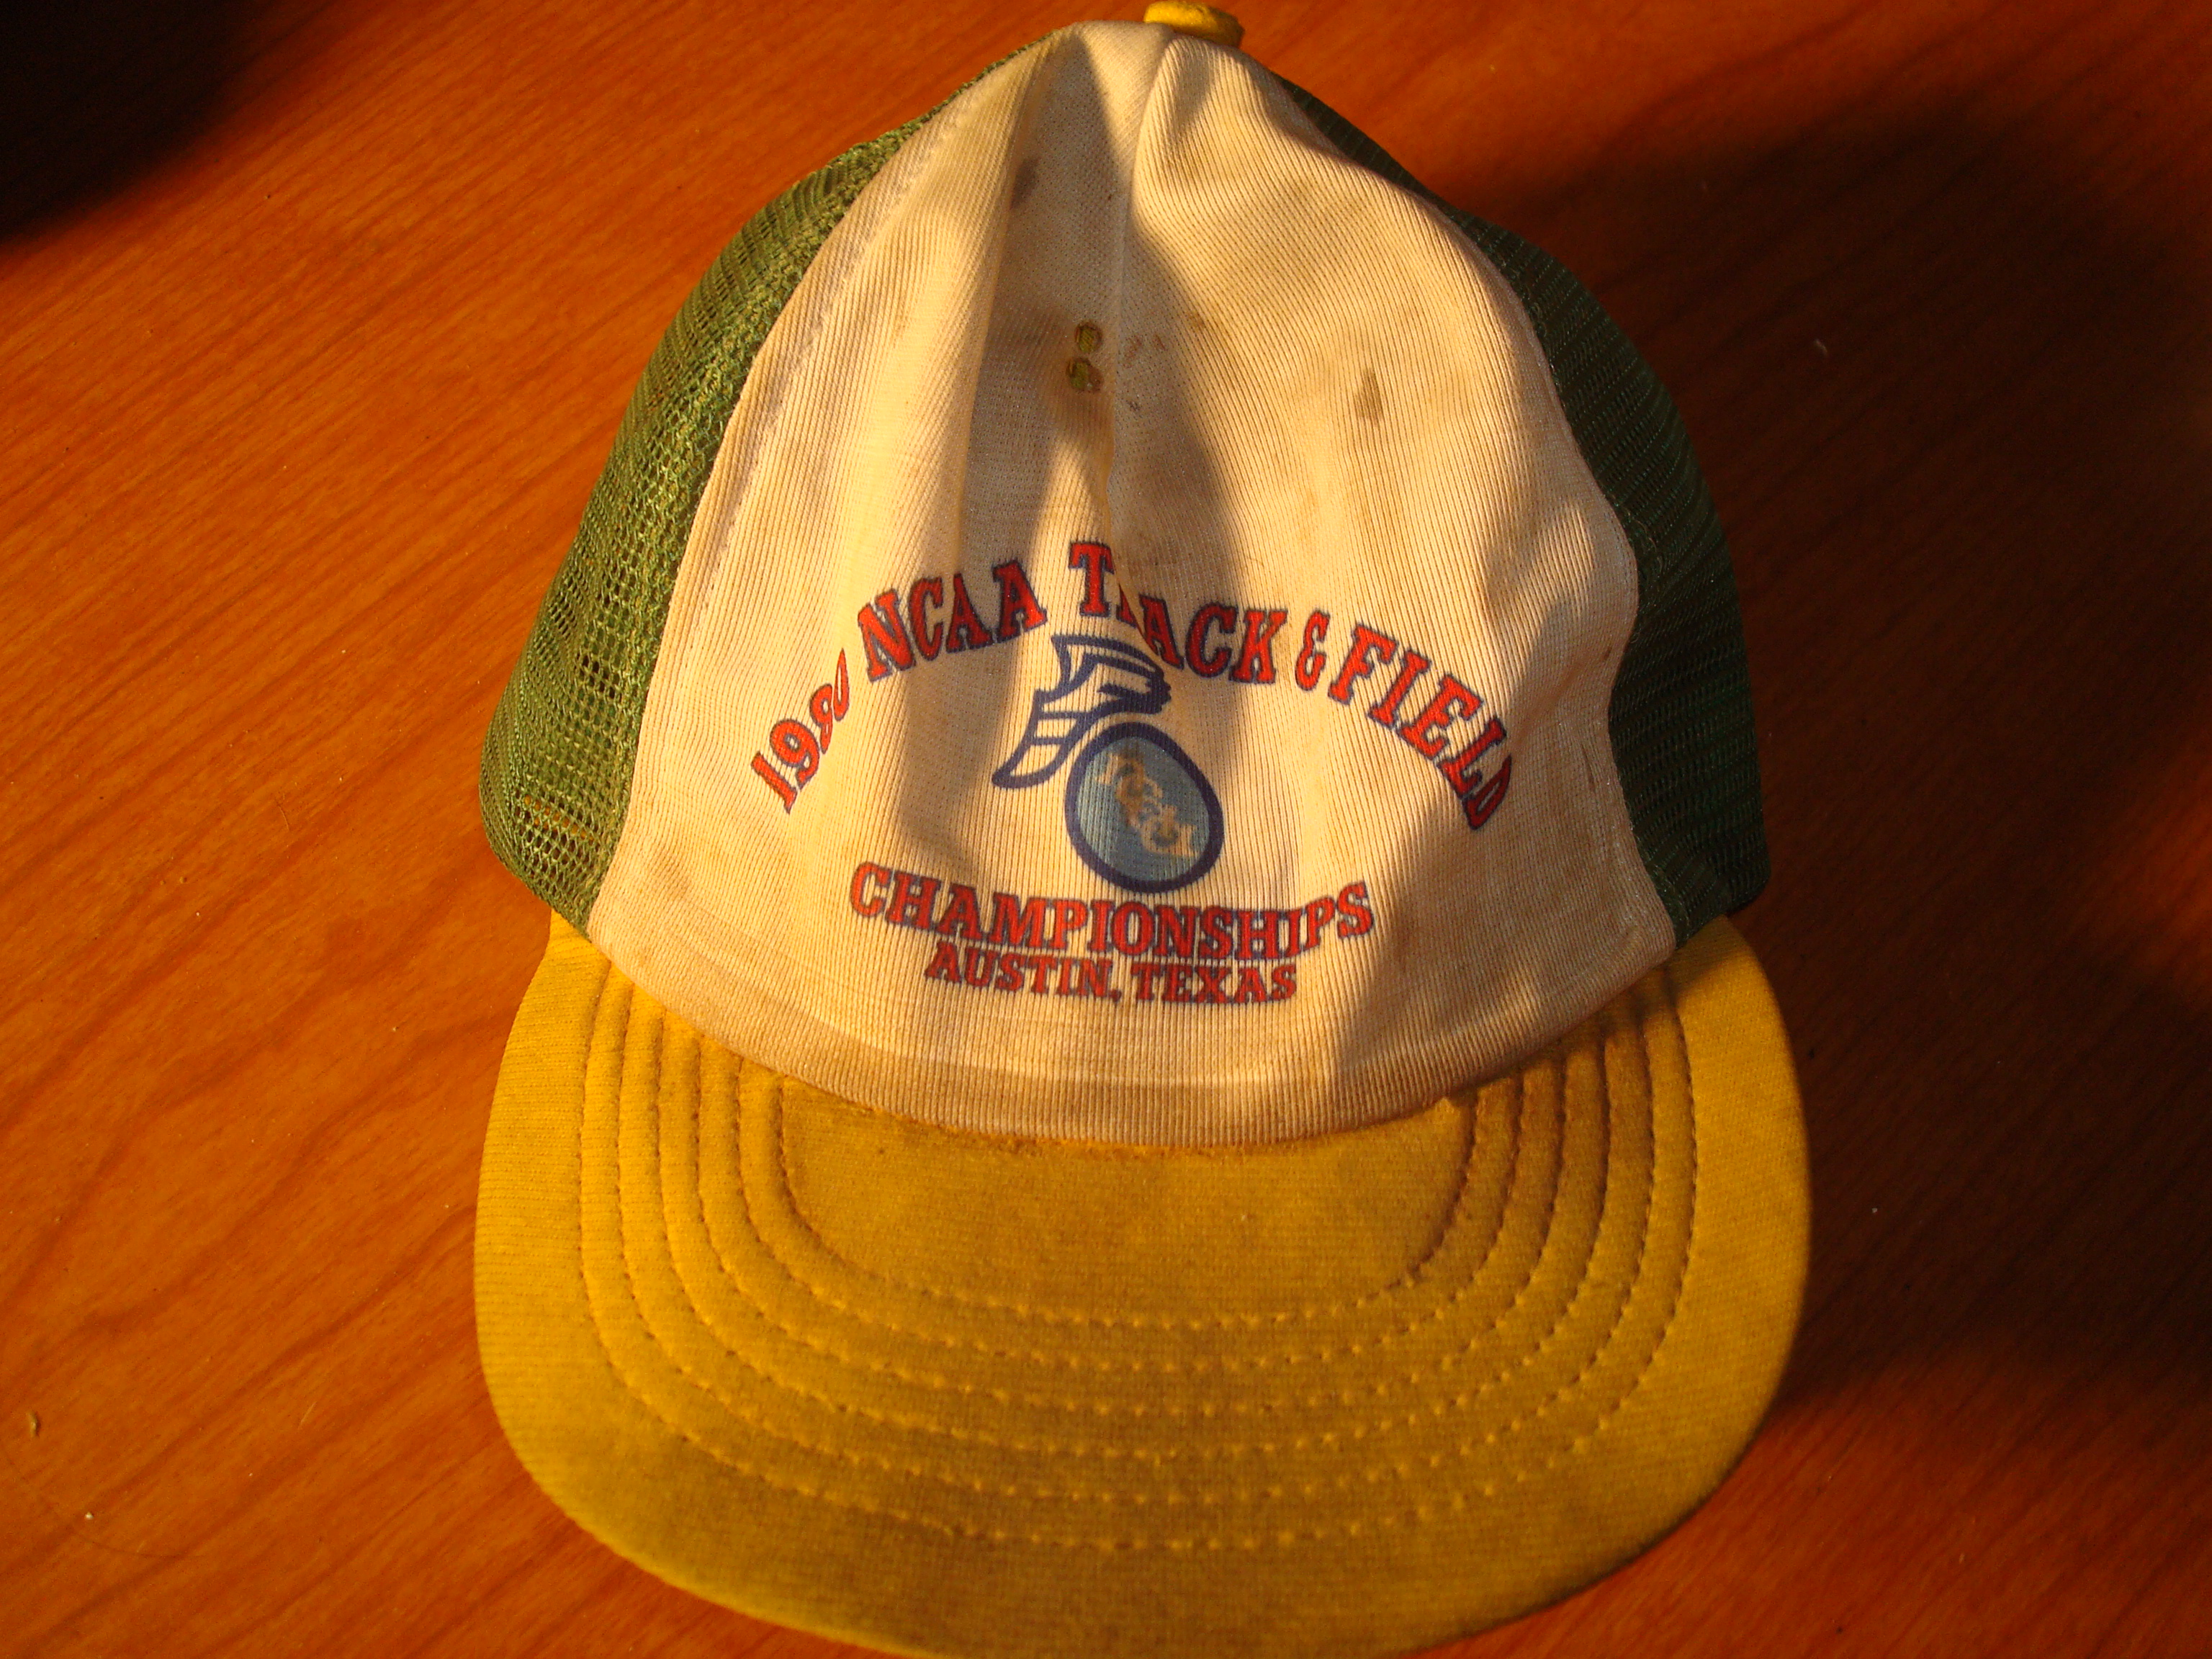 Original Cap 1984 NCAA Track & Field Championship from Darrell K. Royal Memorial Stadium at the Unikversity of Texas